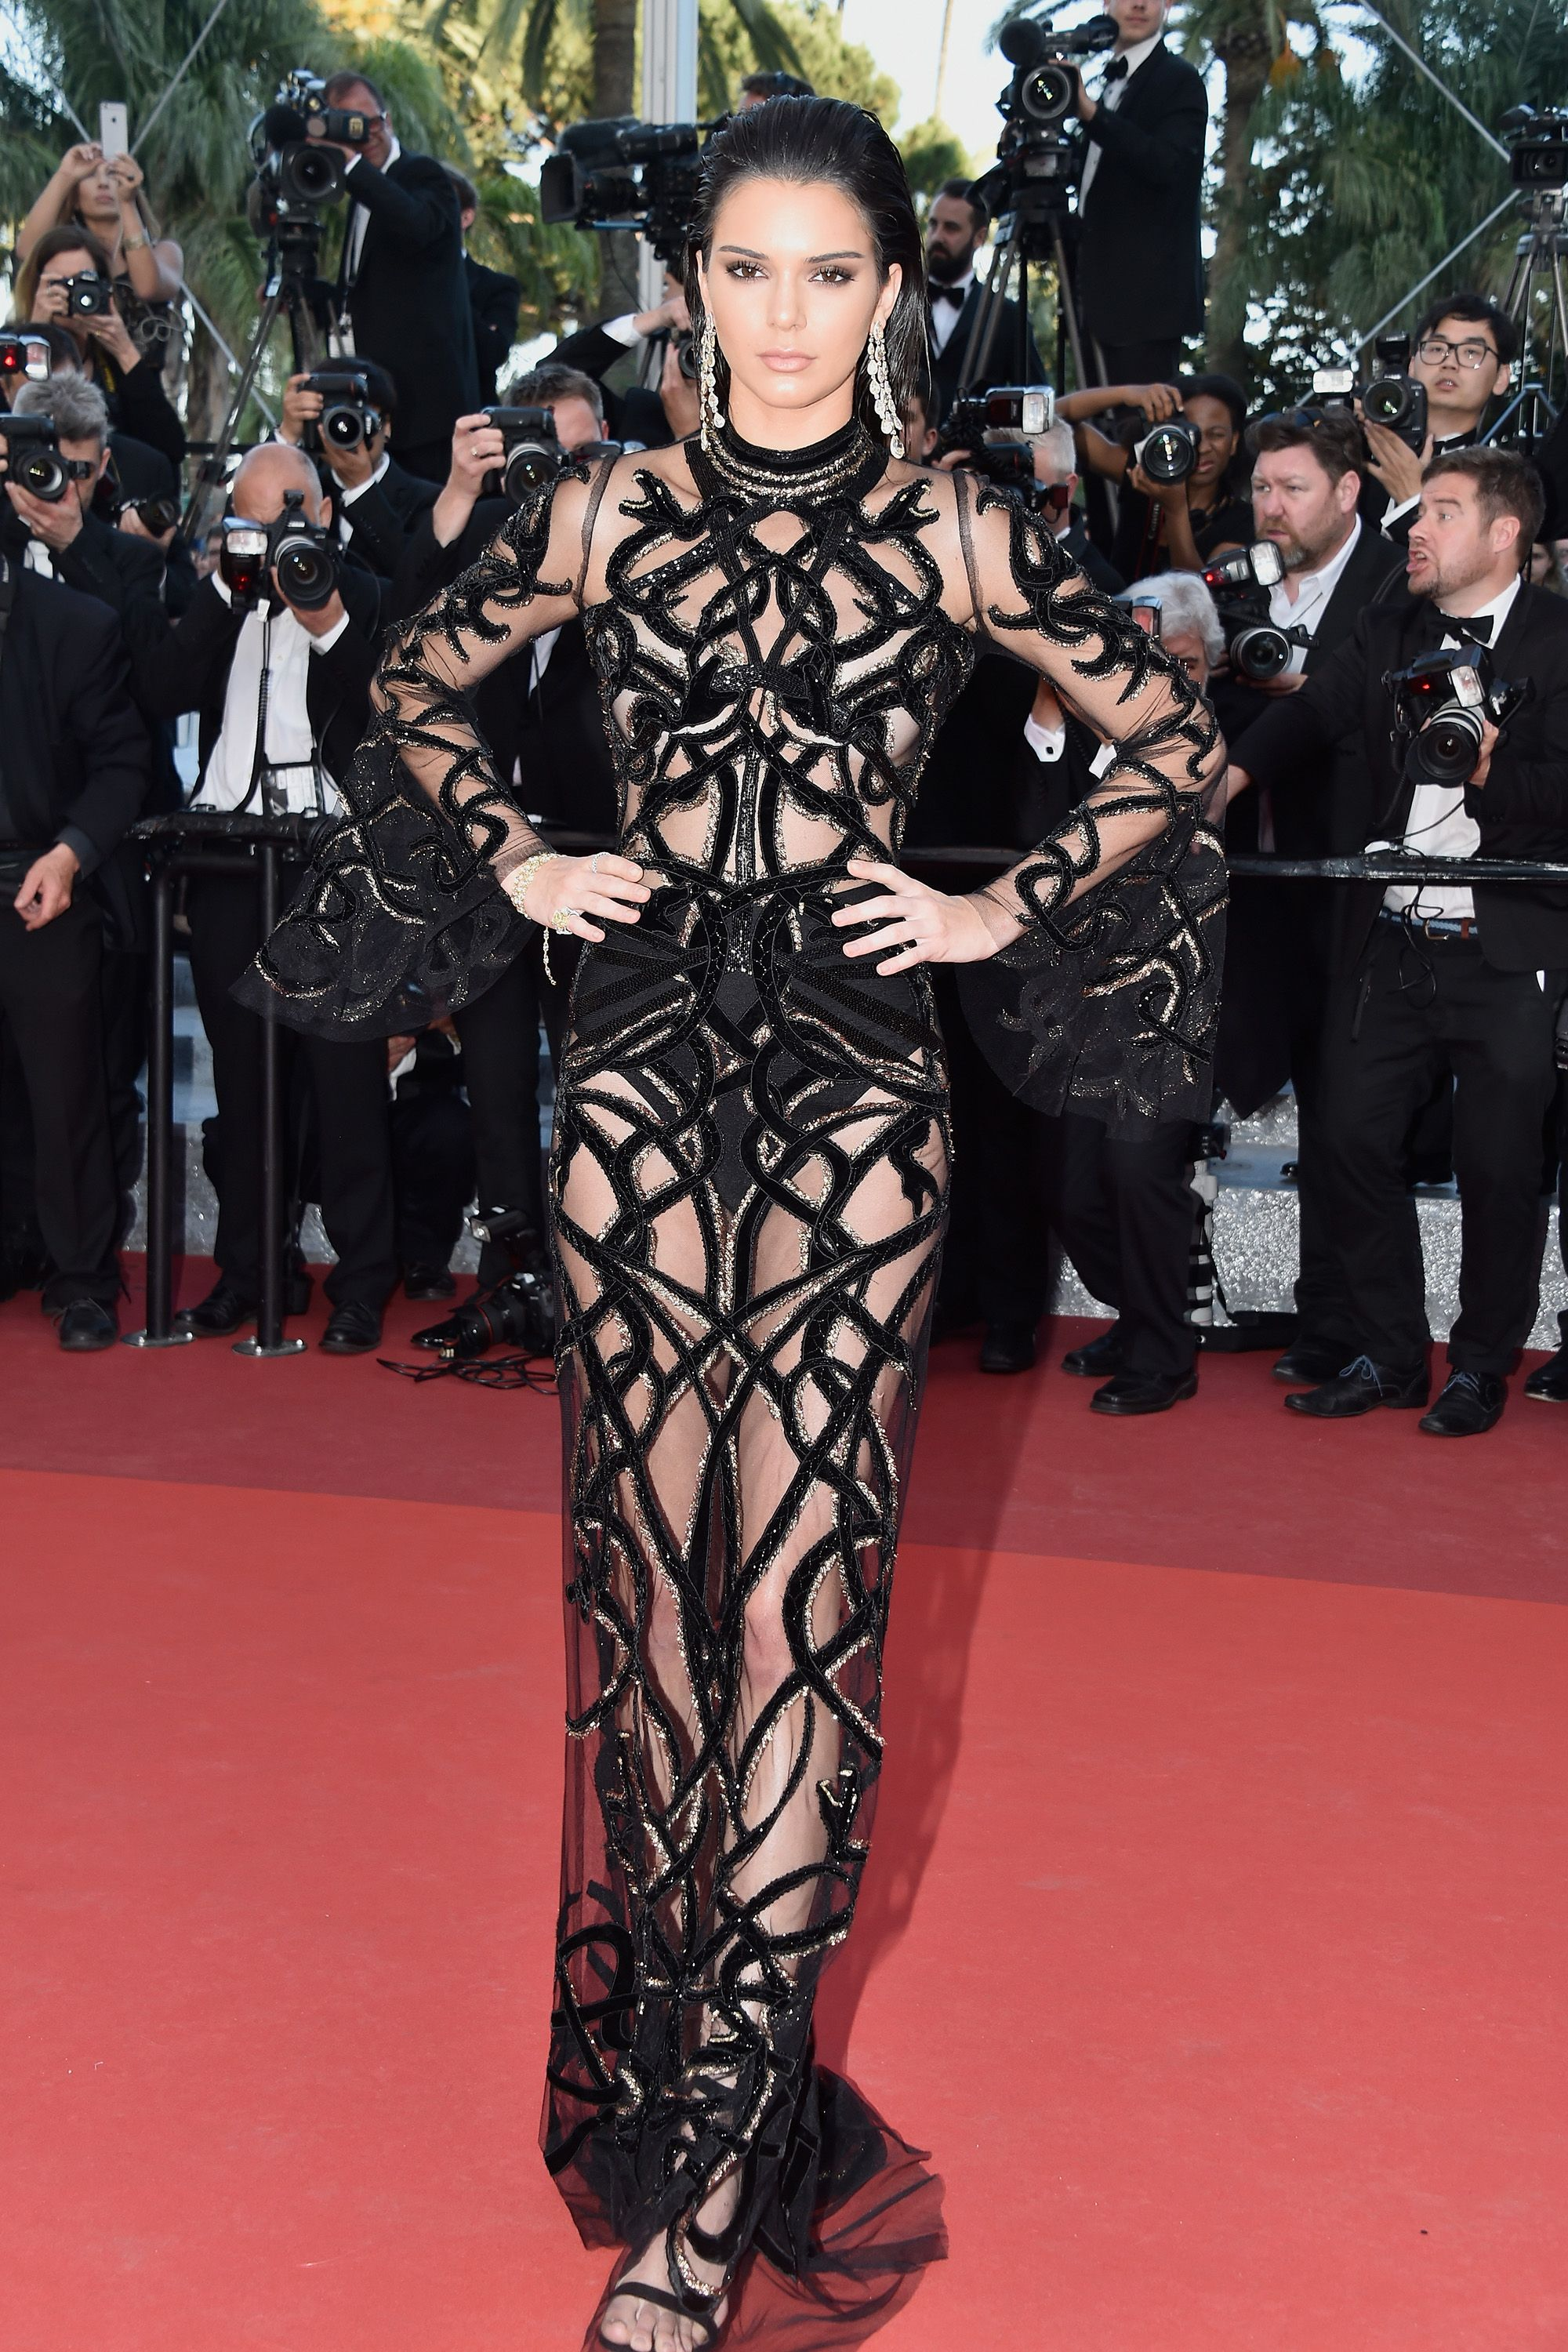 <p><strong>What:</strong> Roberto Cavalli</p><p><strong>Where: </strong><em>From The Land of the Moon</em> Premiere</p><p><strong>Why: </strong>The model proved she wasn't afraid to show it all off in this sheer couture confection.</p>